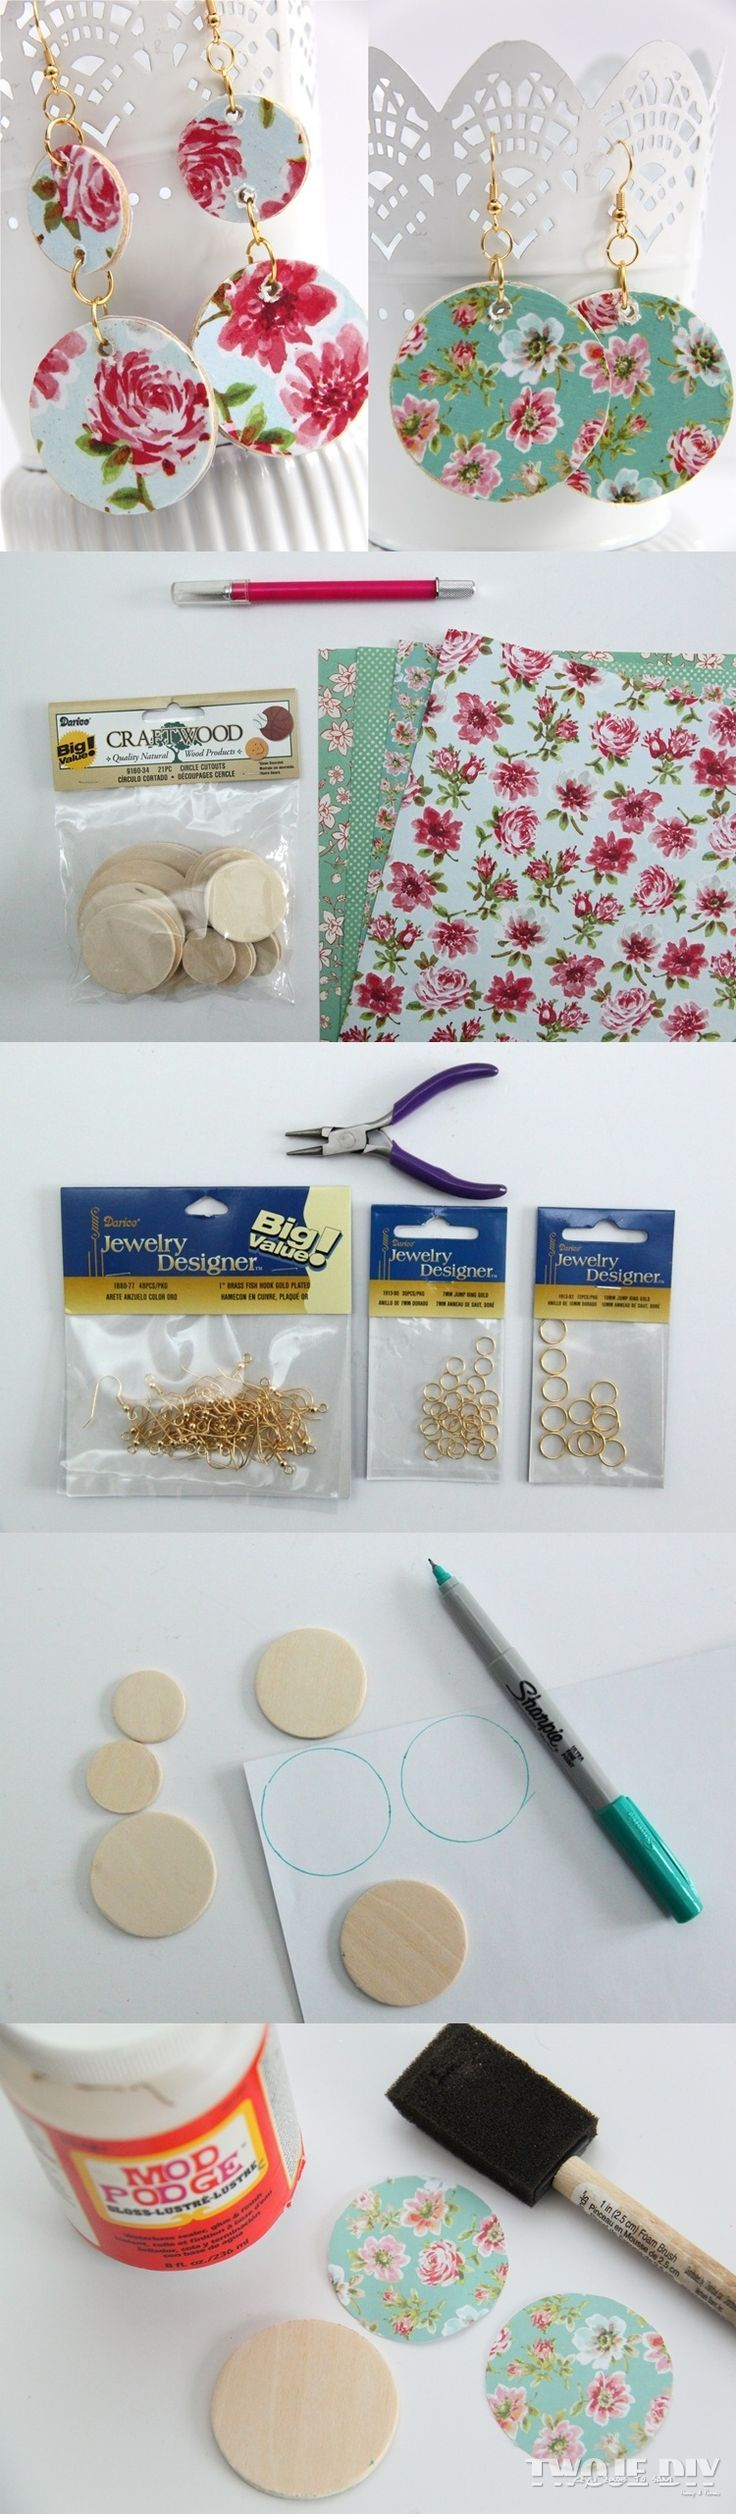 best craft ideas images on pinterest button crafts crafts and